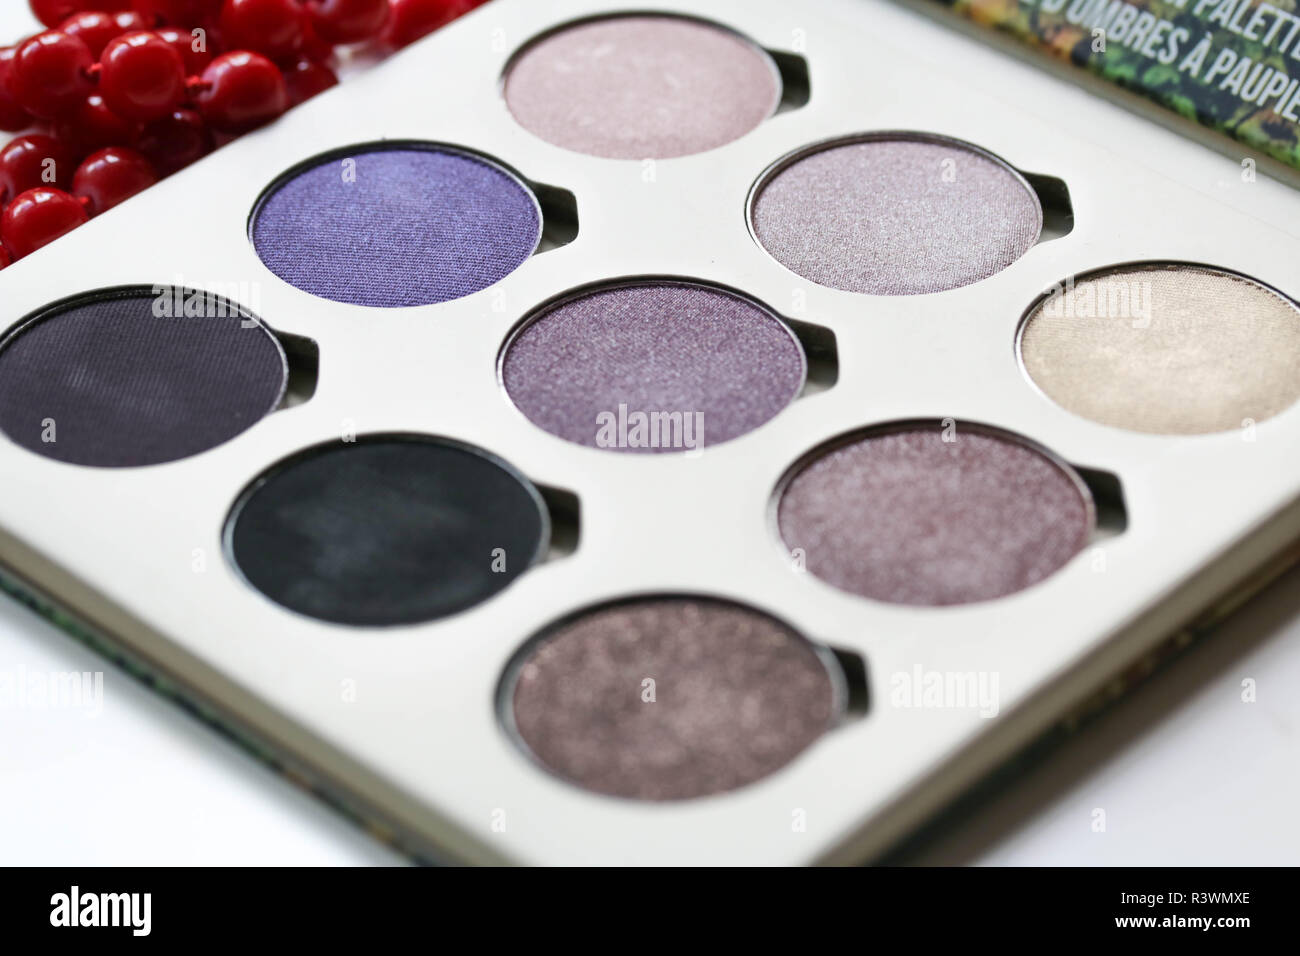 Eyeshadow Palette Purple Shades Close Up - Stock Image